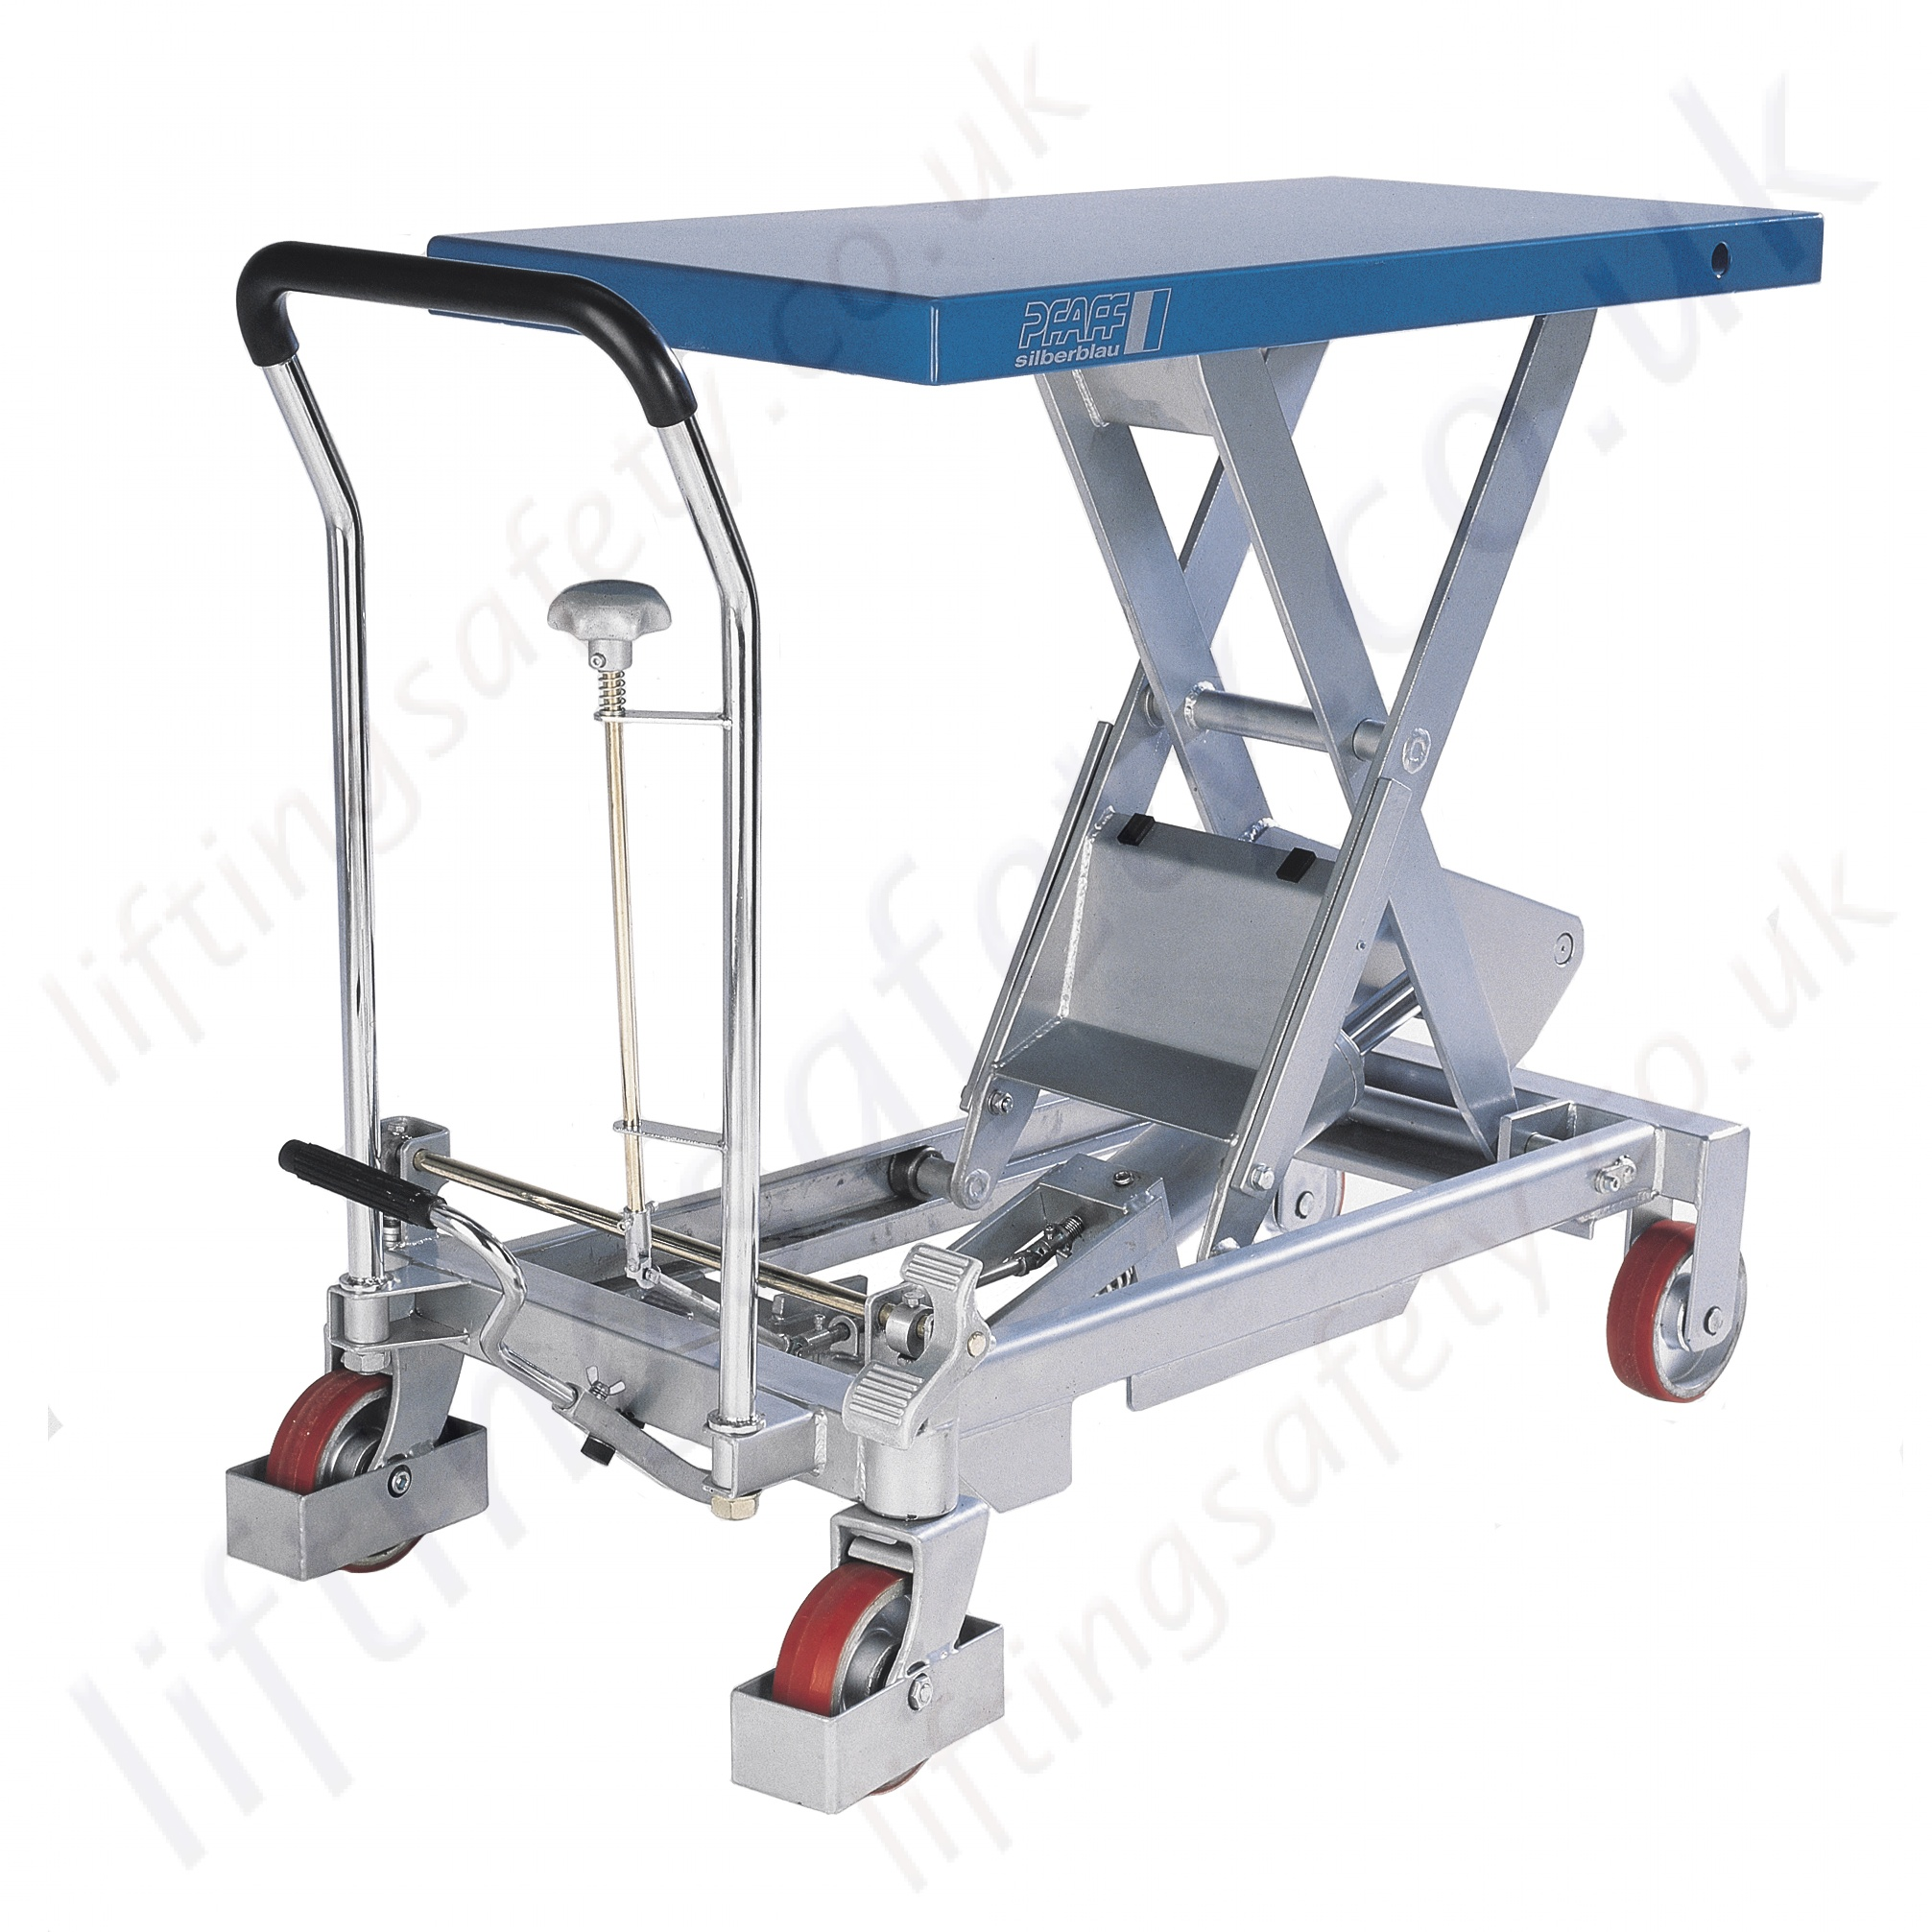 scissor d pake lift table handling tools manual hydraulic s